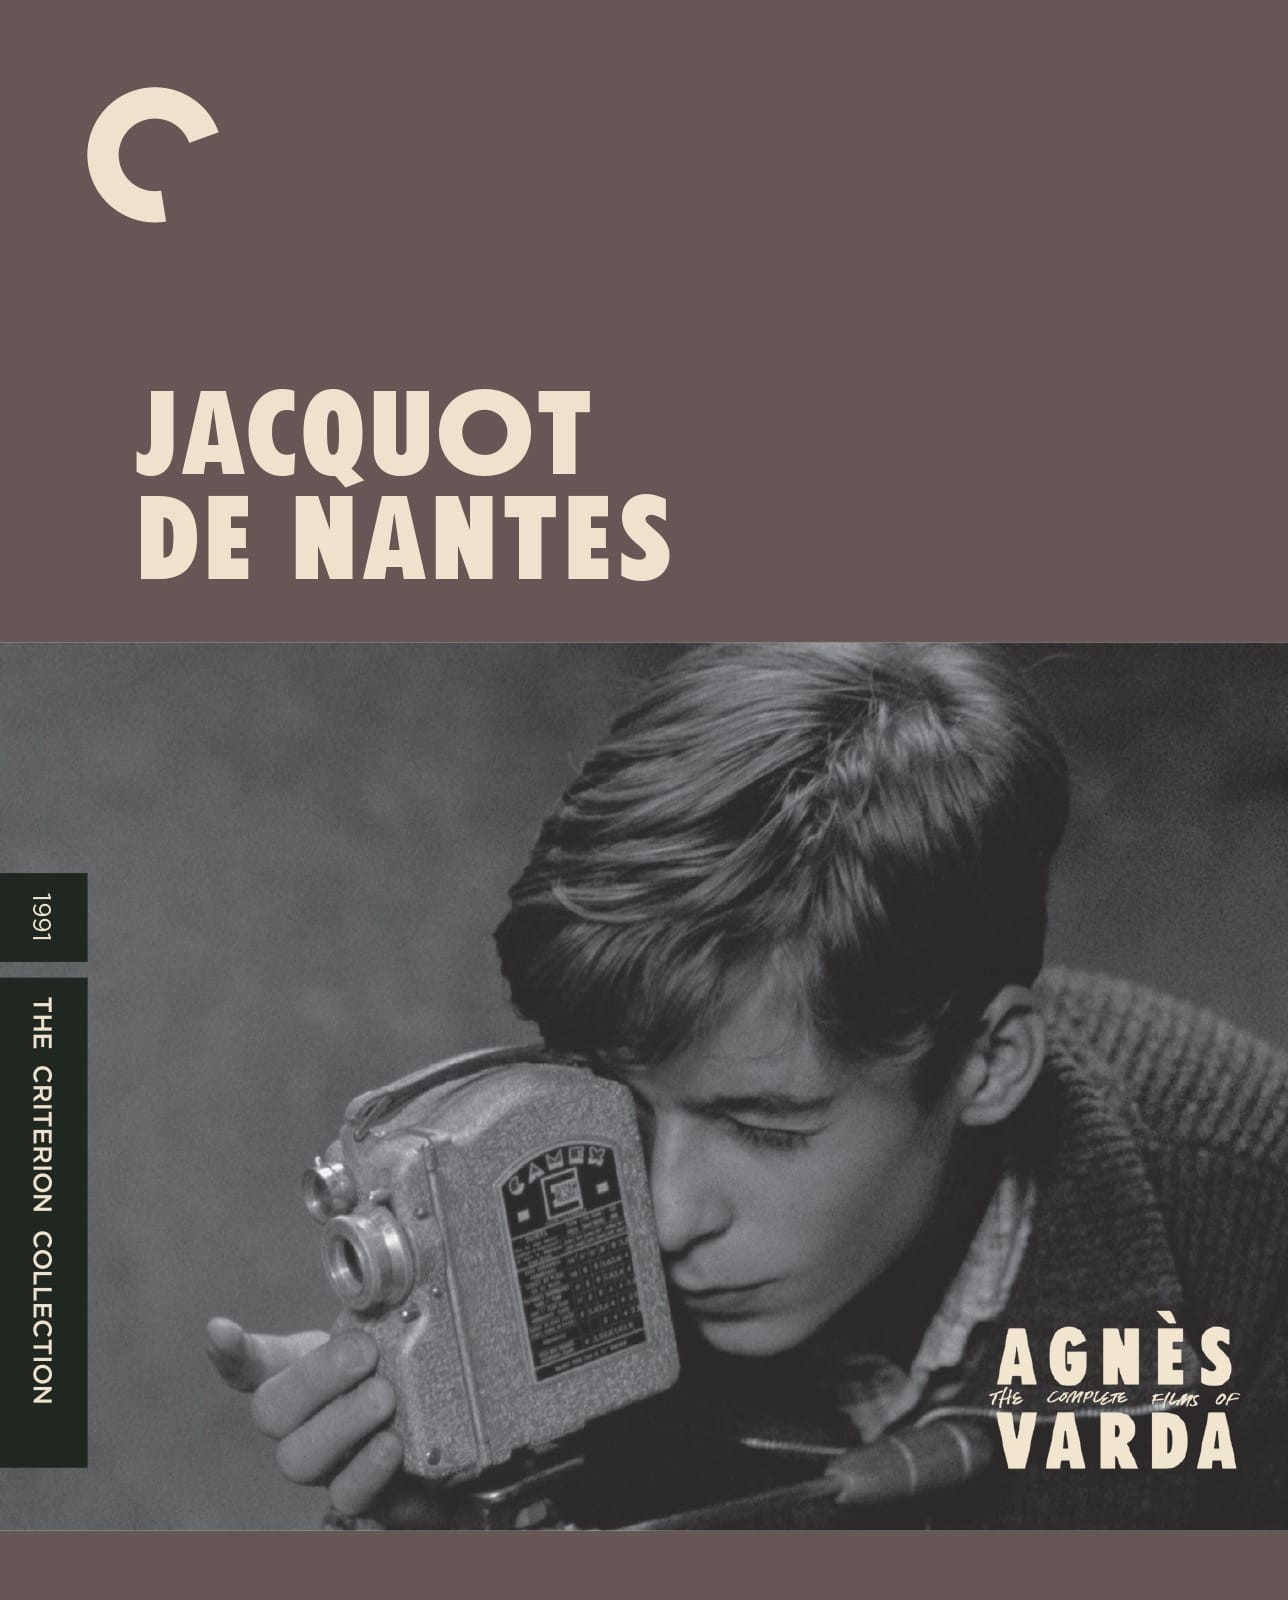 Jacquot de Nantes (1991) | The Criterion Collection